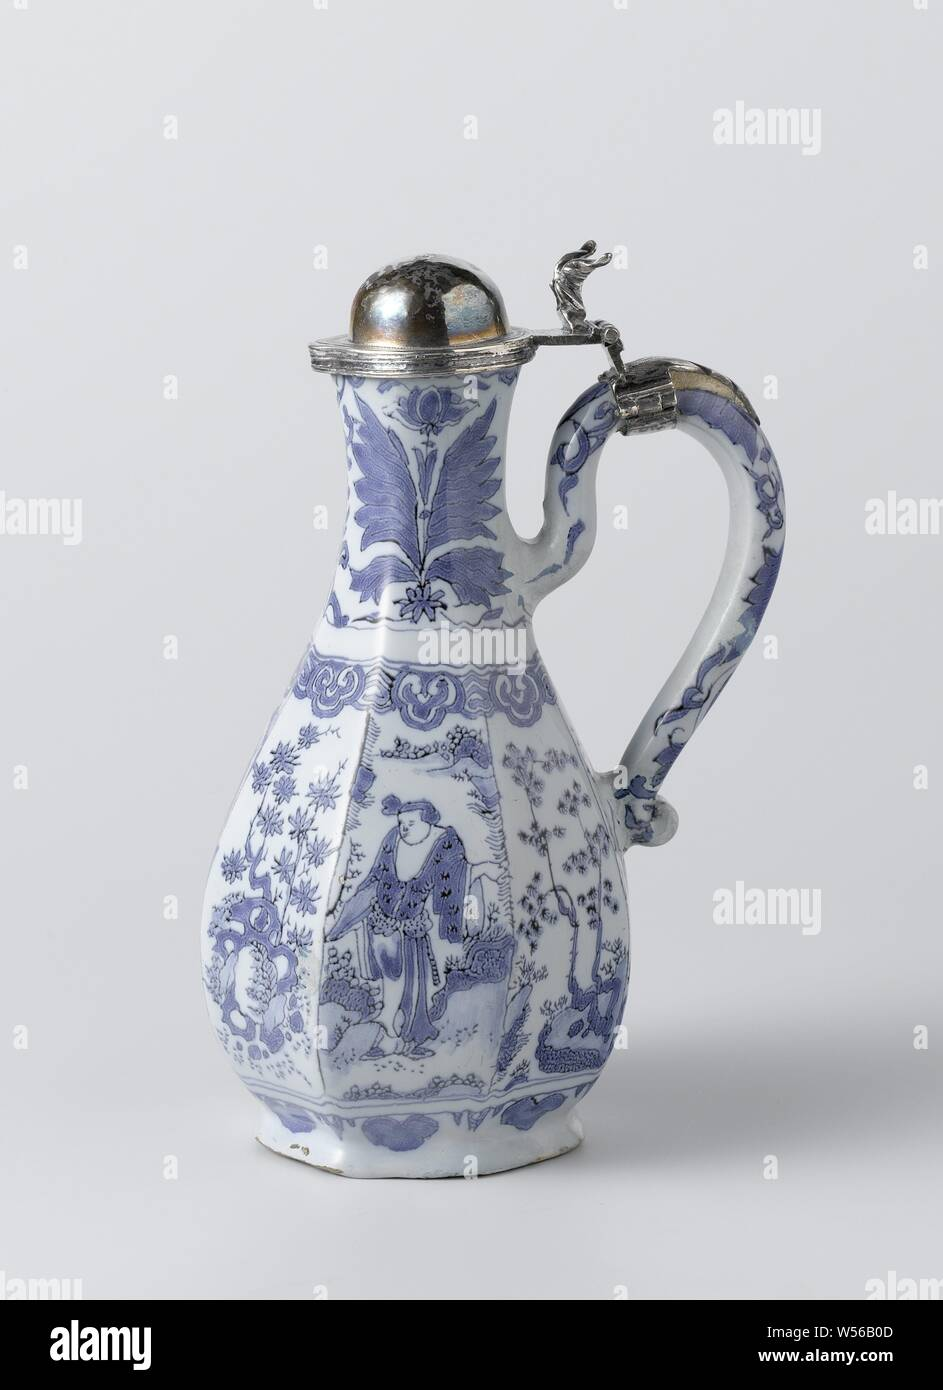 Ewer with silver lid Pot of faience with a lid of silver, anonymous, Delft, c. 1660 - c. 1680, silver (metal), h 19.5 cm Stock Photo